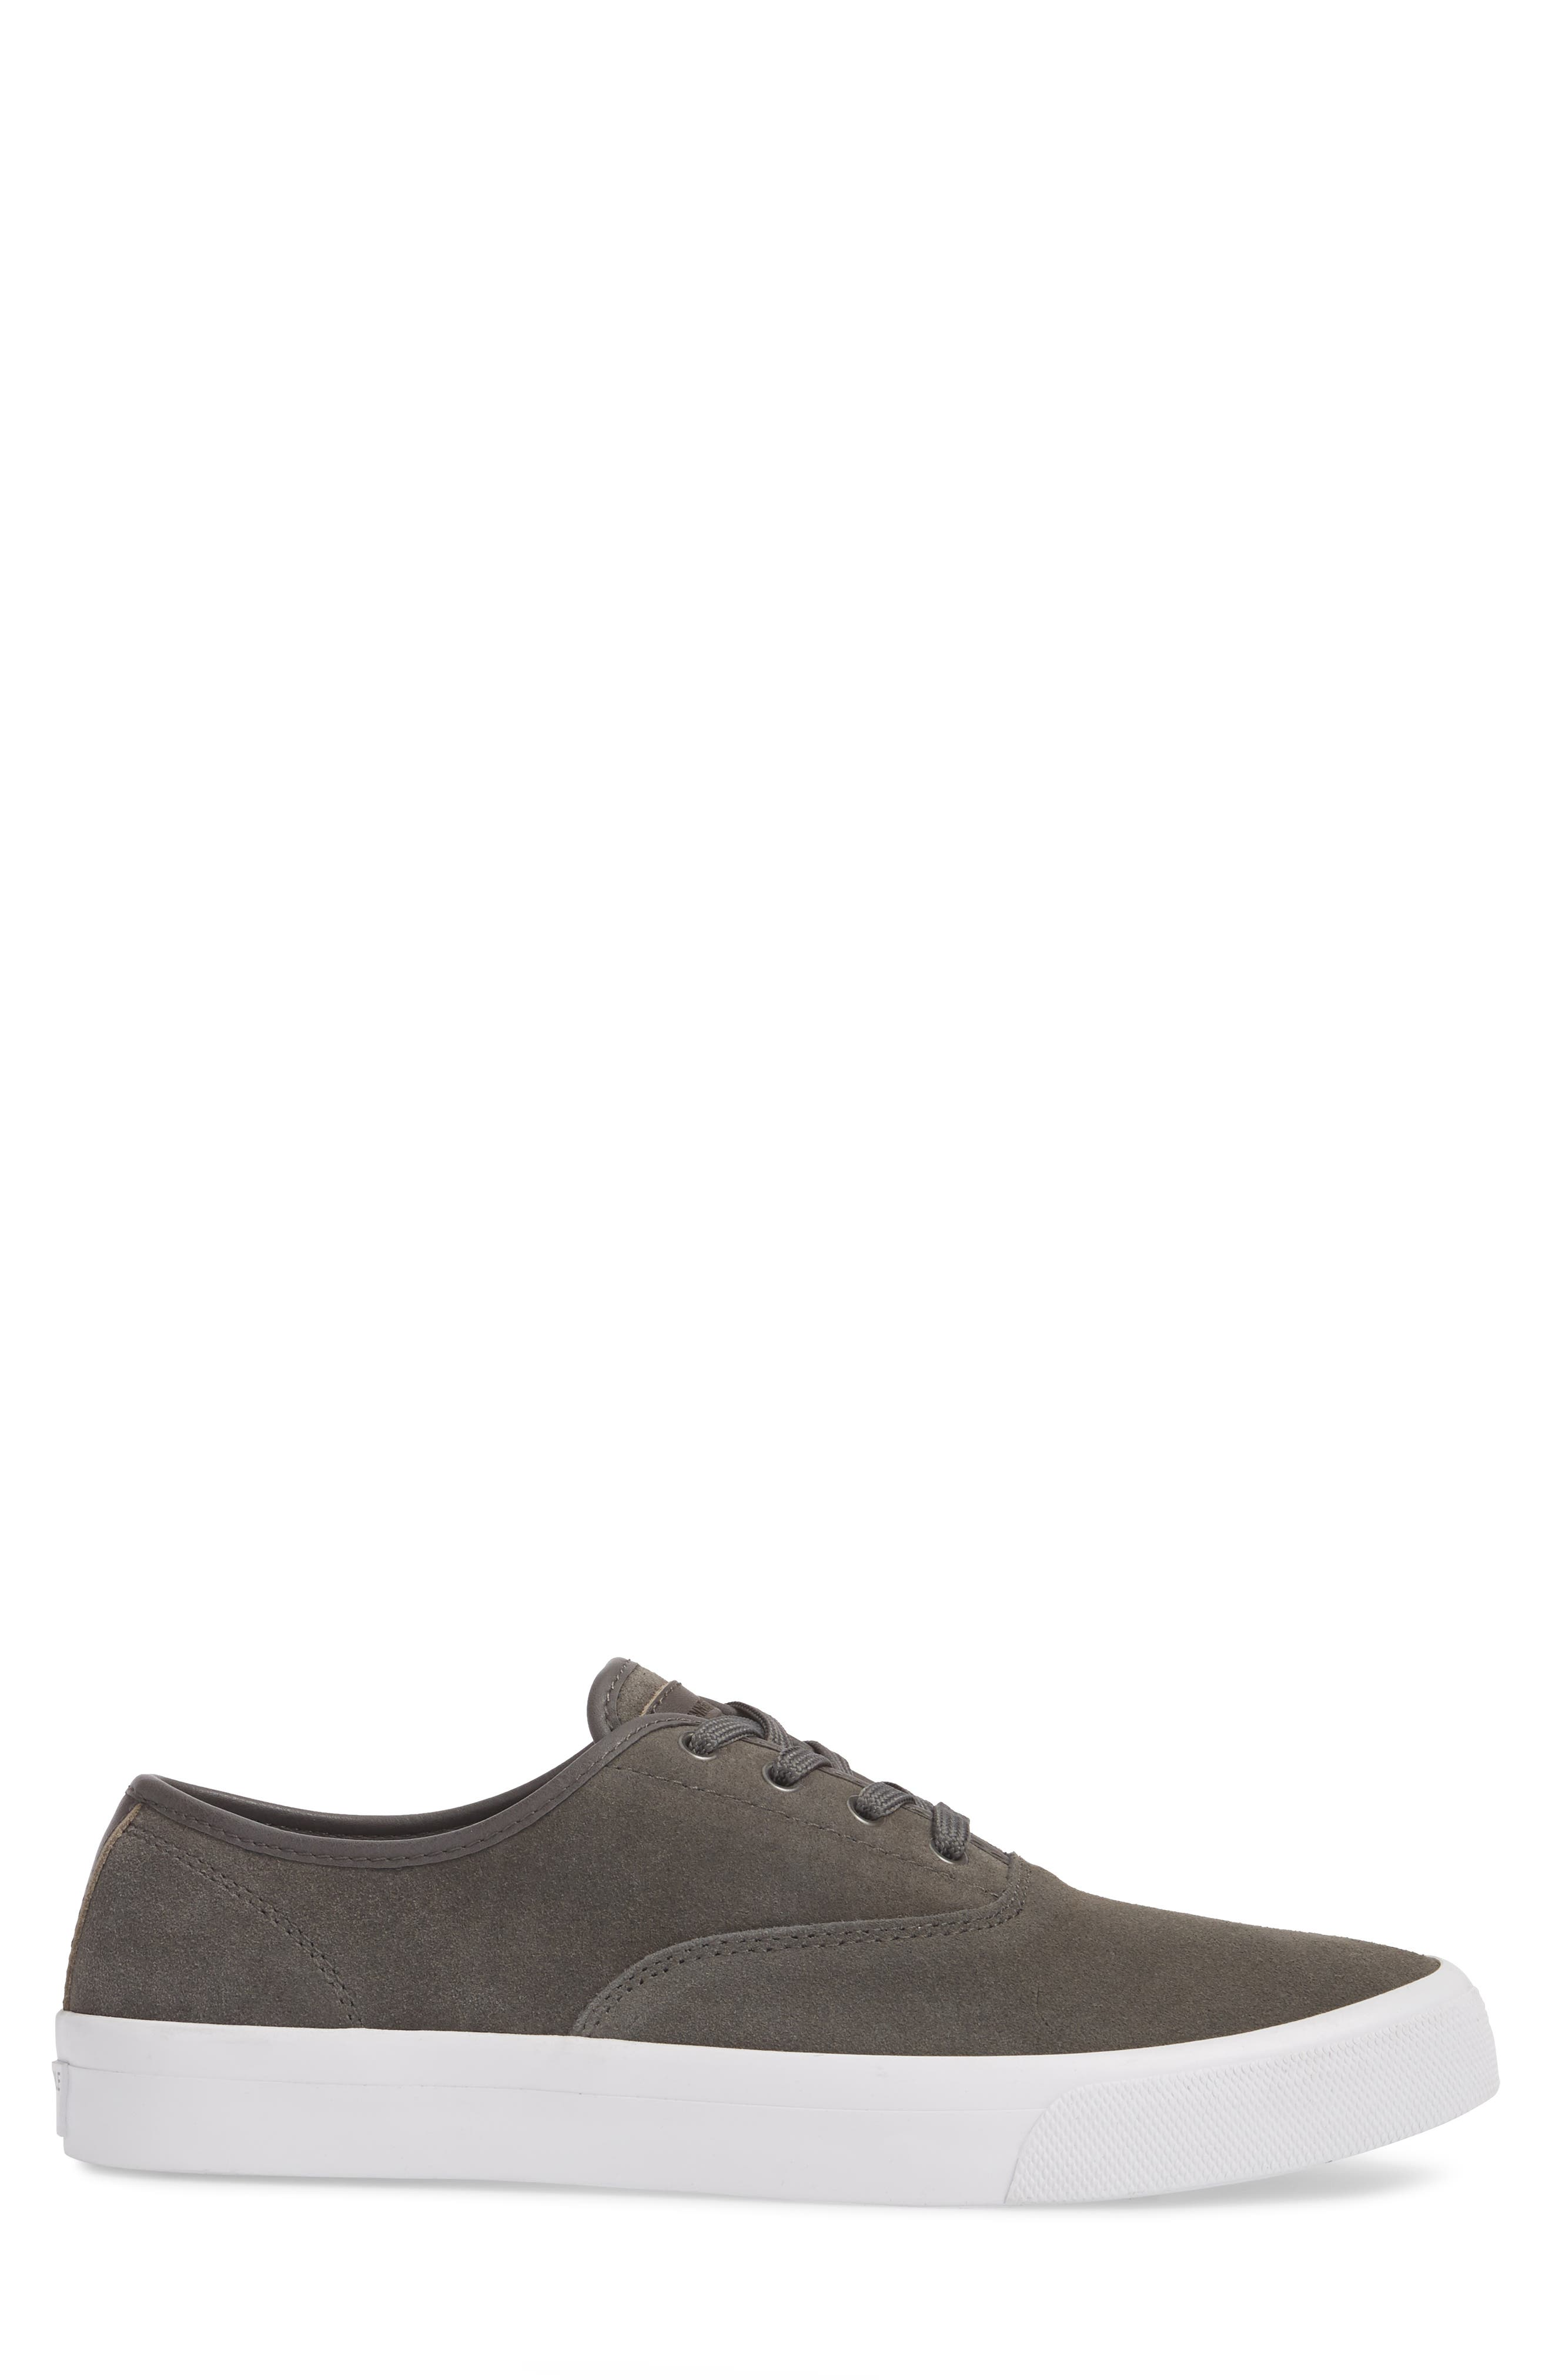 Toor Low Top Sneaker,                             Alternate thumbnail 3, color,                             Grey Combo Suede